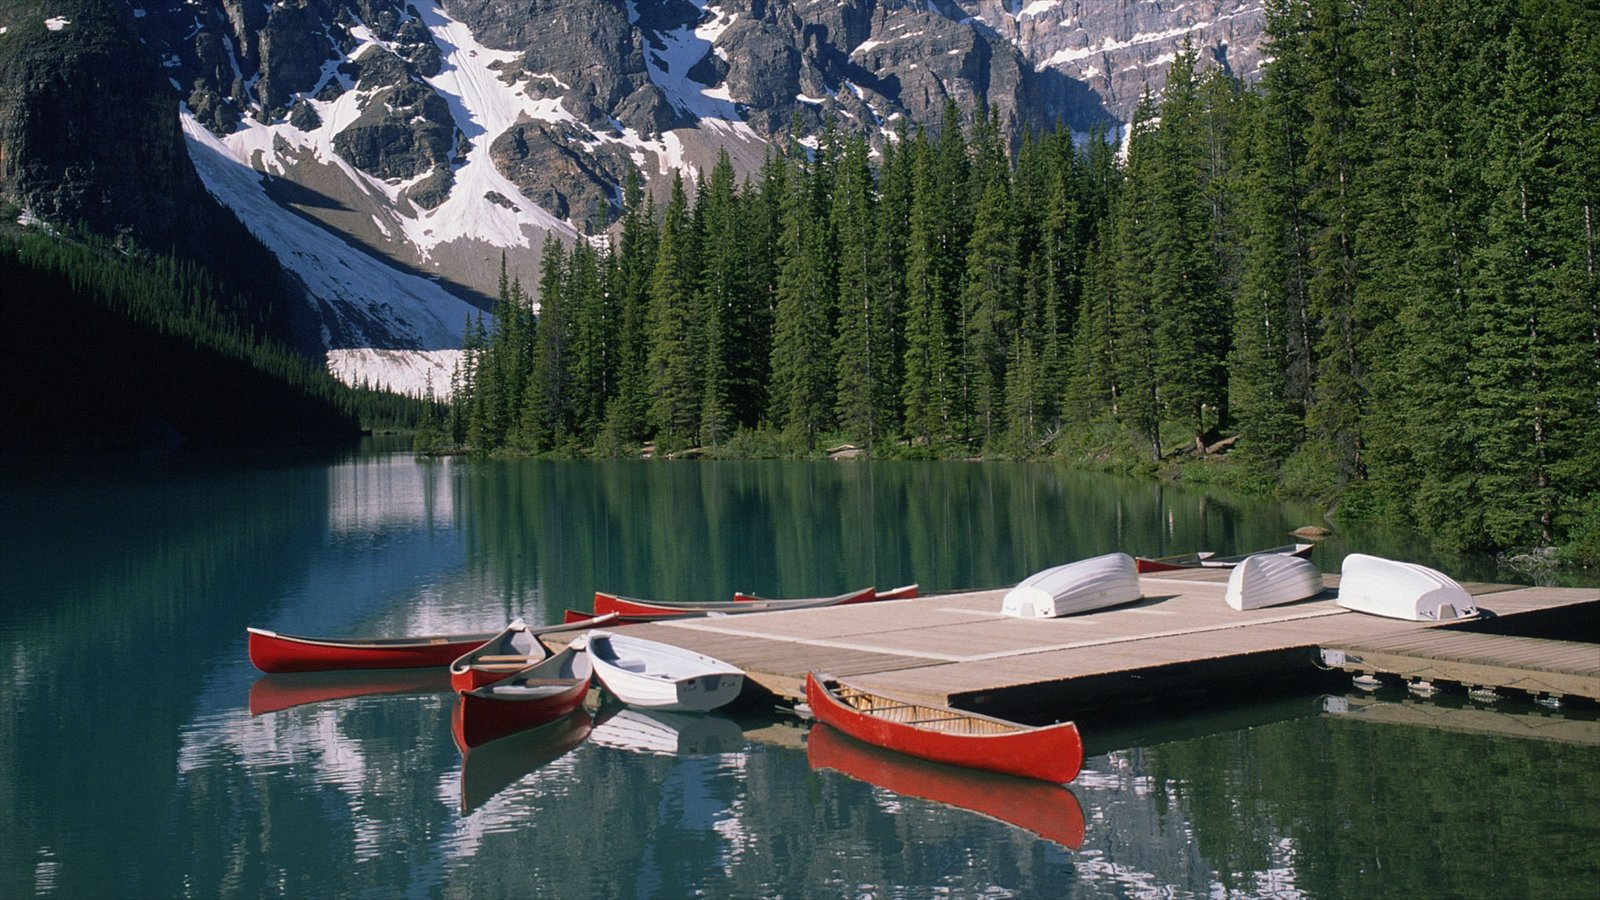 Banff National Park which includes kayaking or canoeing, a lake or waterhole and a park